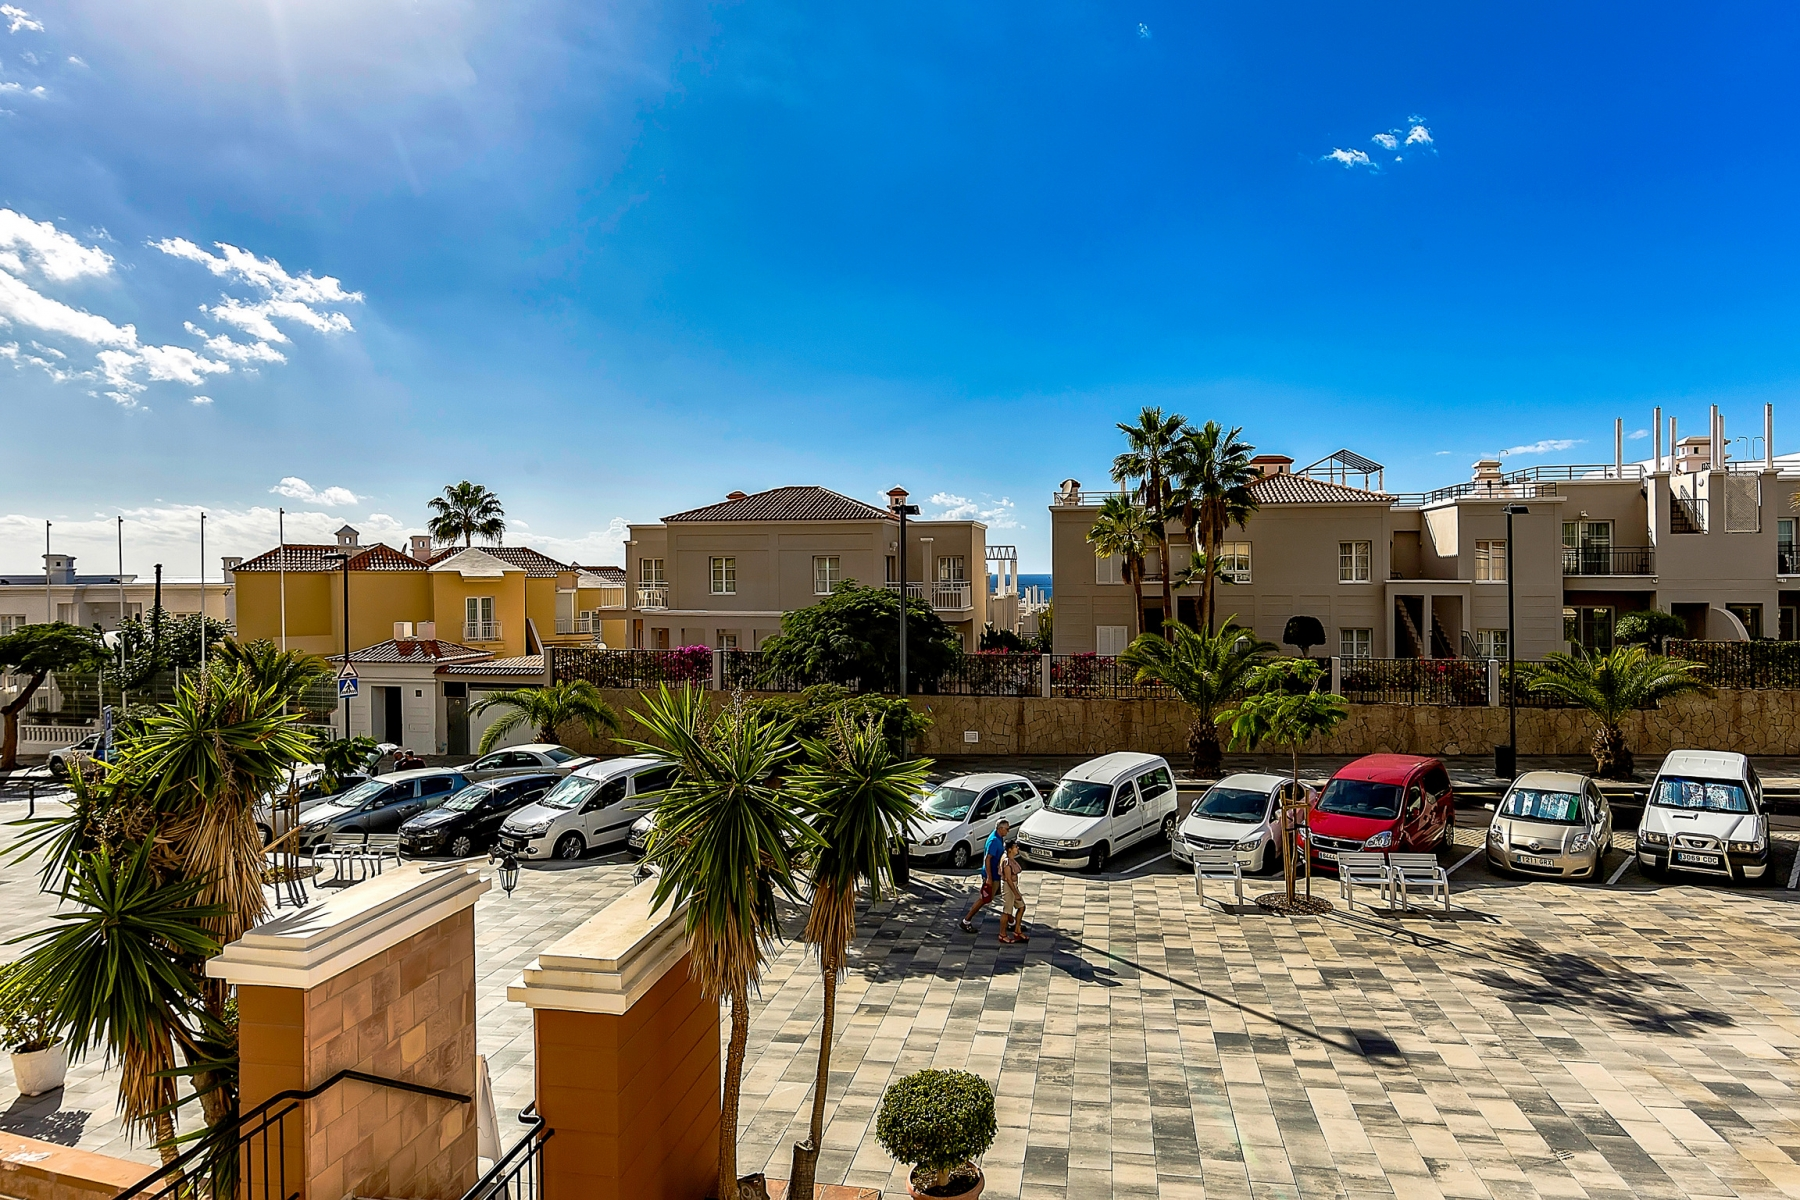 Properties for Sale in Tenerife, Canary Islands, Spain | SylkWayStar Real Estate. 1 bedroom apartment Yucca Park. Image-22536